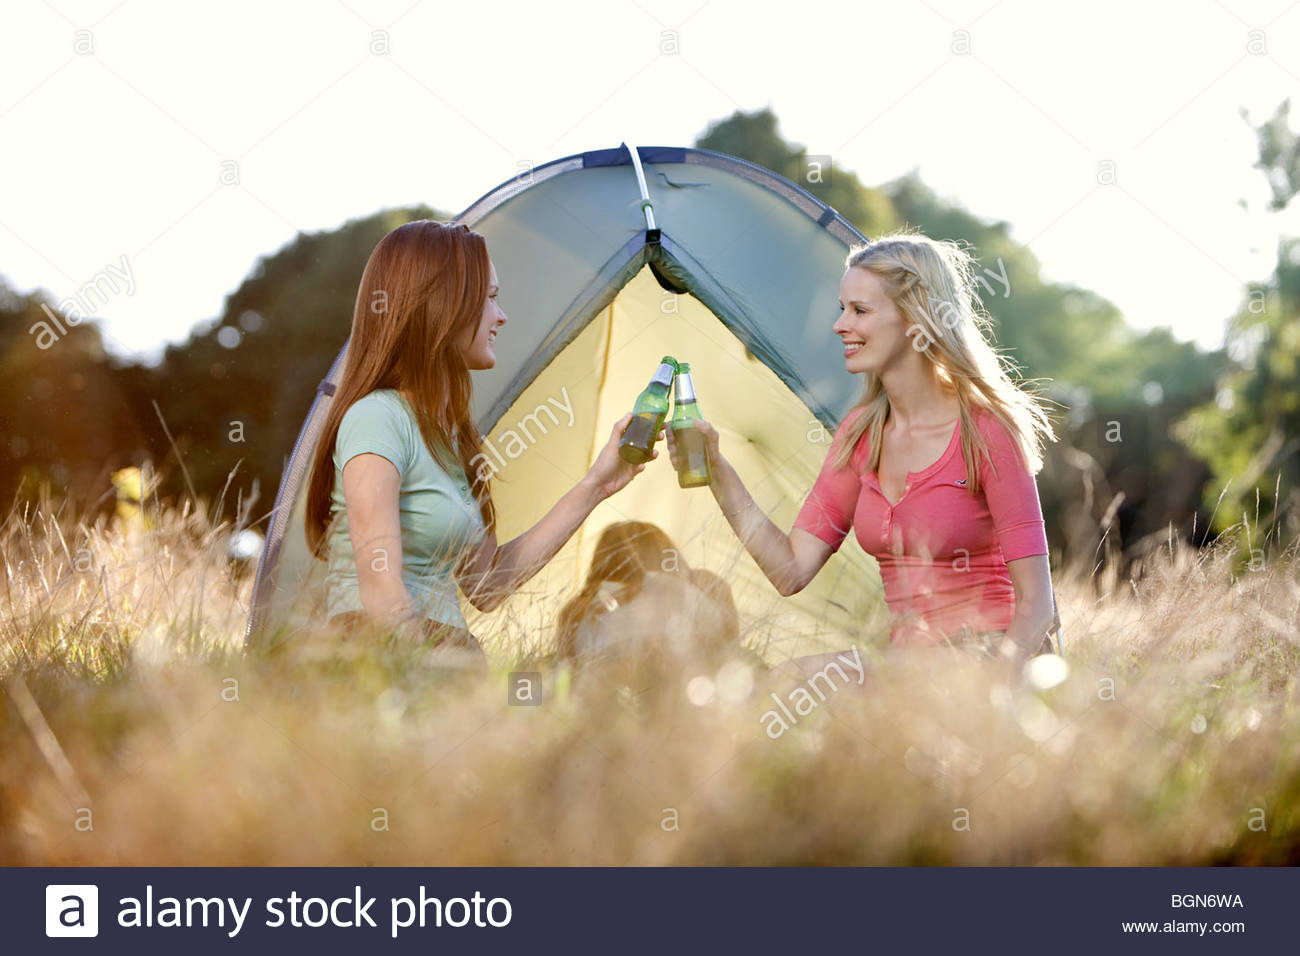 Three young women camping, two drinking beers - Stock Image